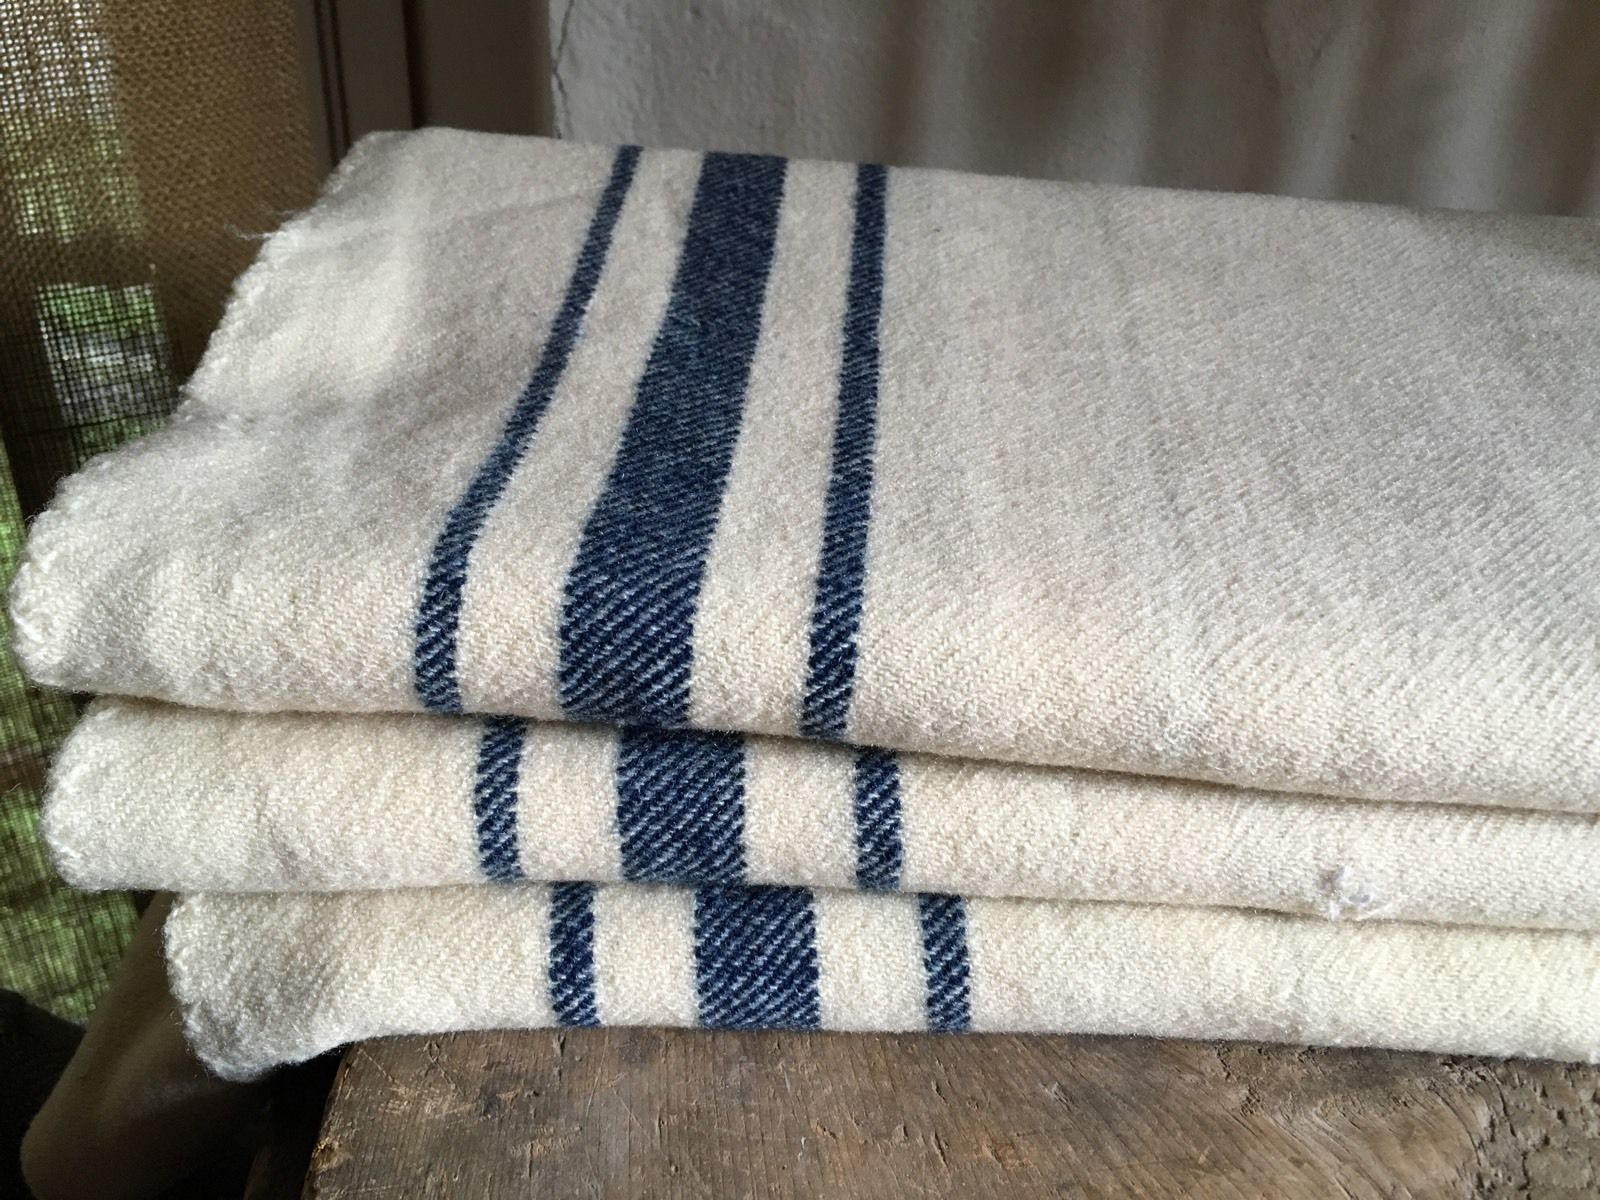 Early Antique Homespun Wool Blanket Indigo Blue   Cream Textile AAFA ... ce1f7985b